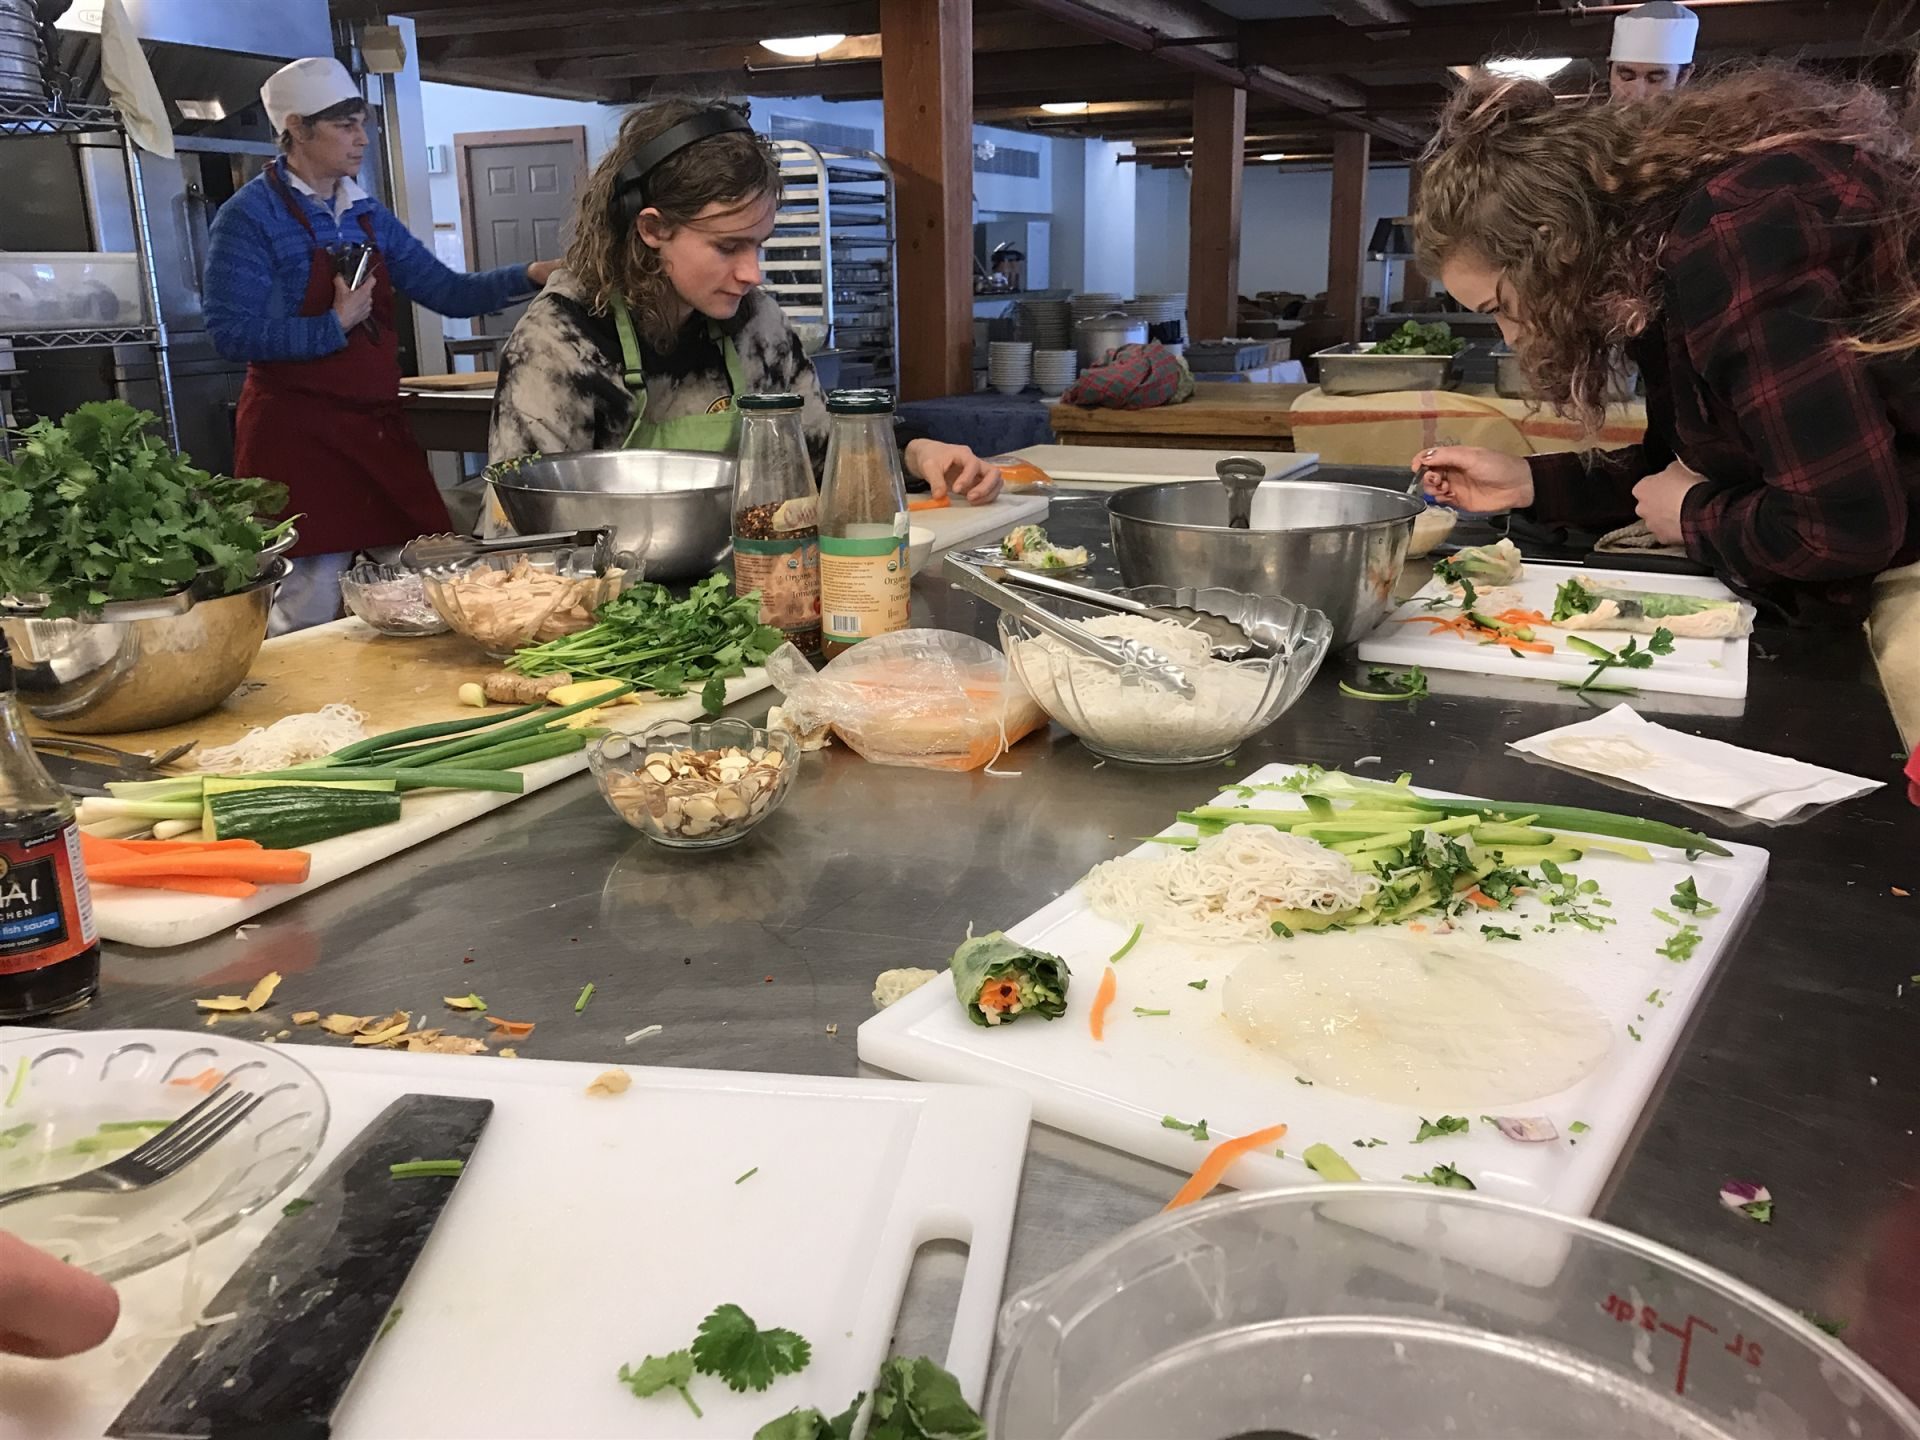 The afternoon culinary class cooks up some Thai rolls under the instruction of head chef Evan Fielding.